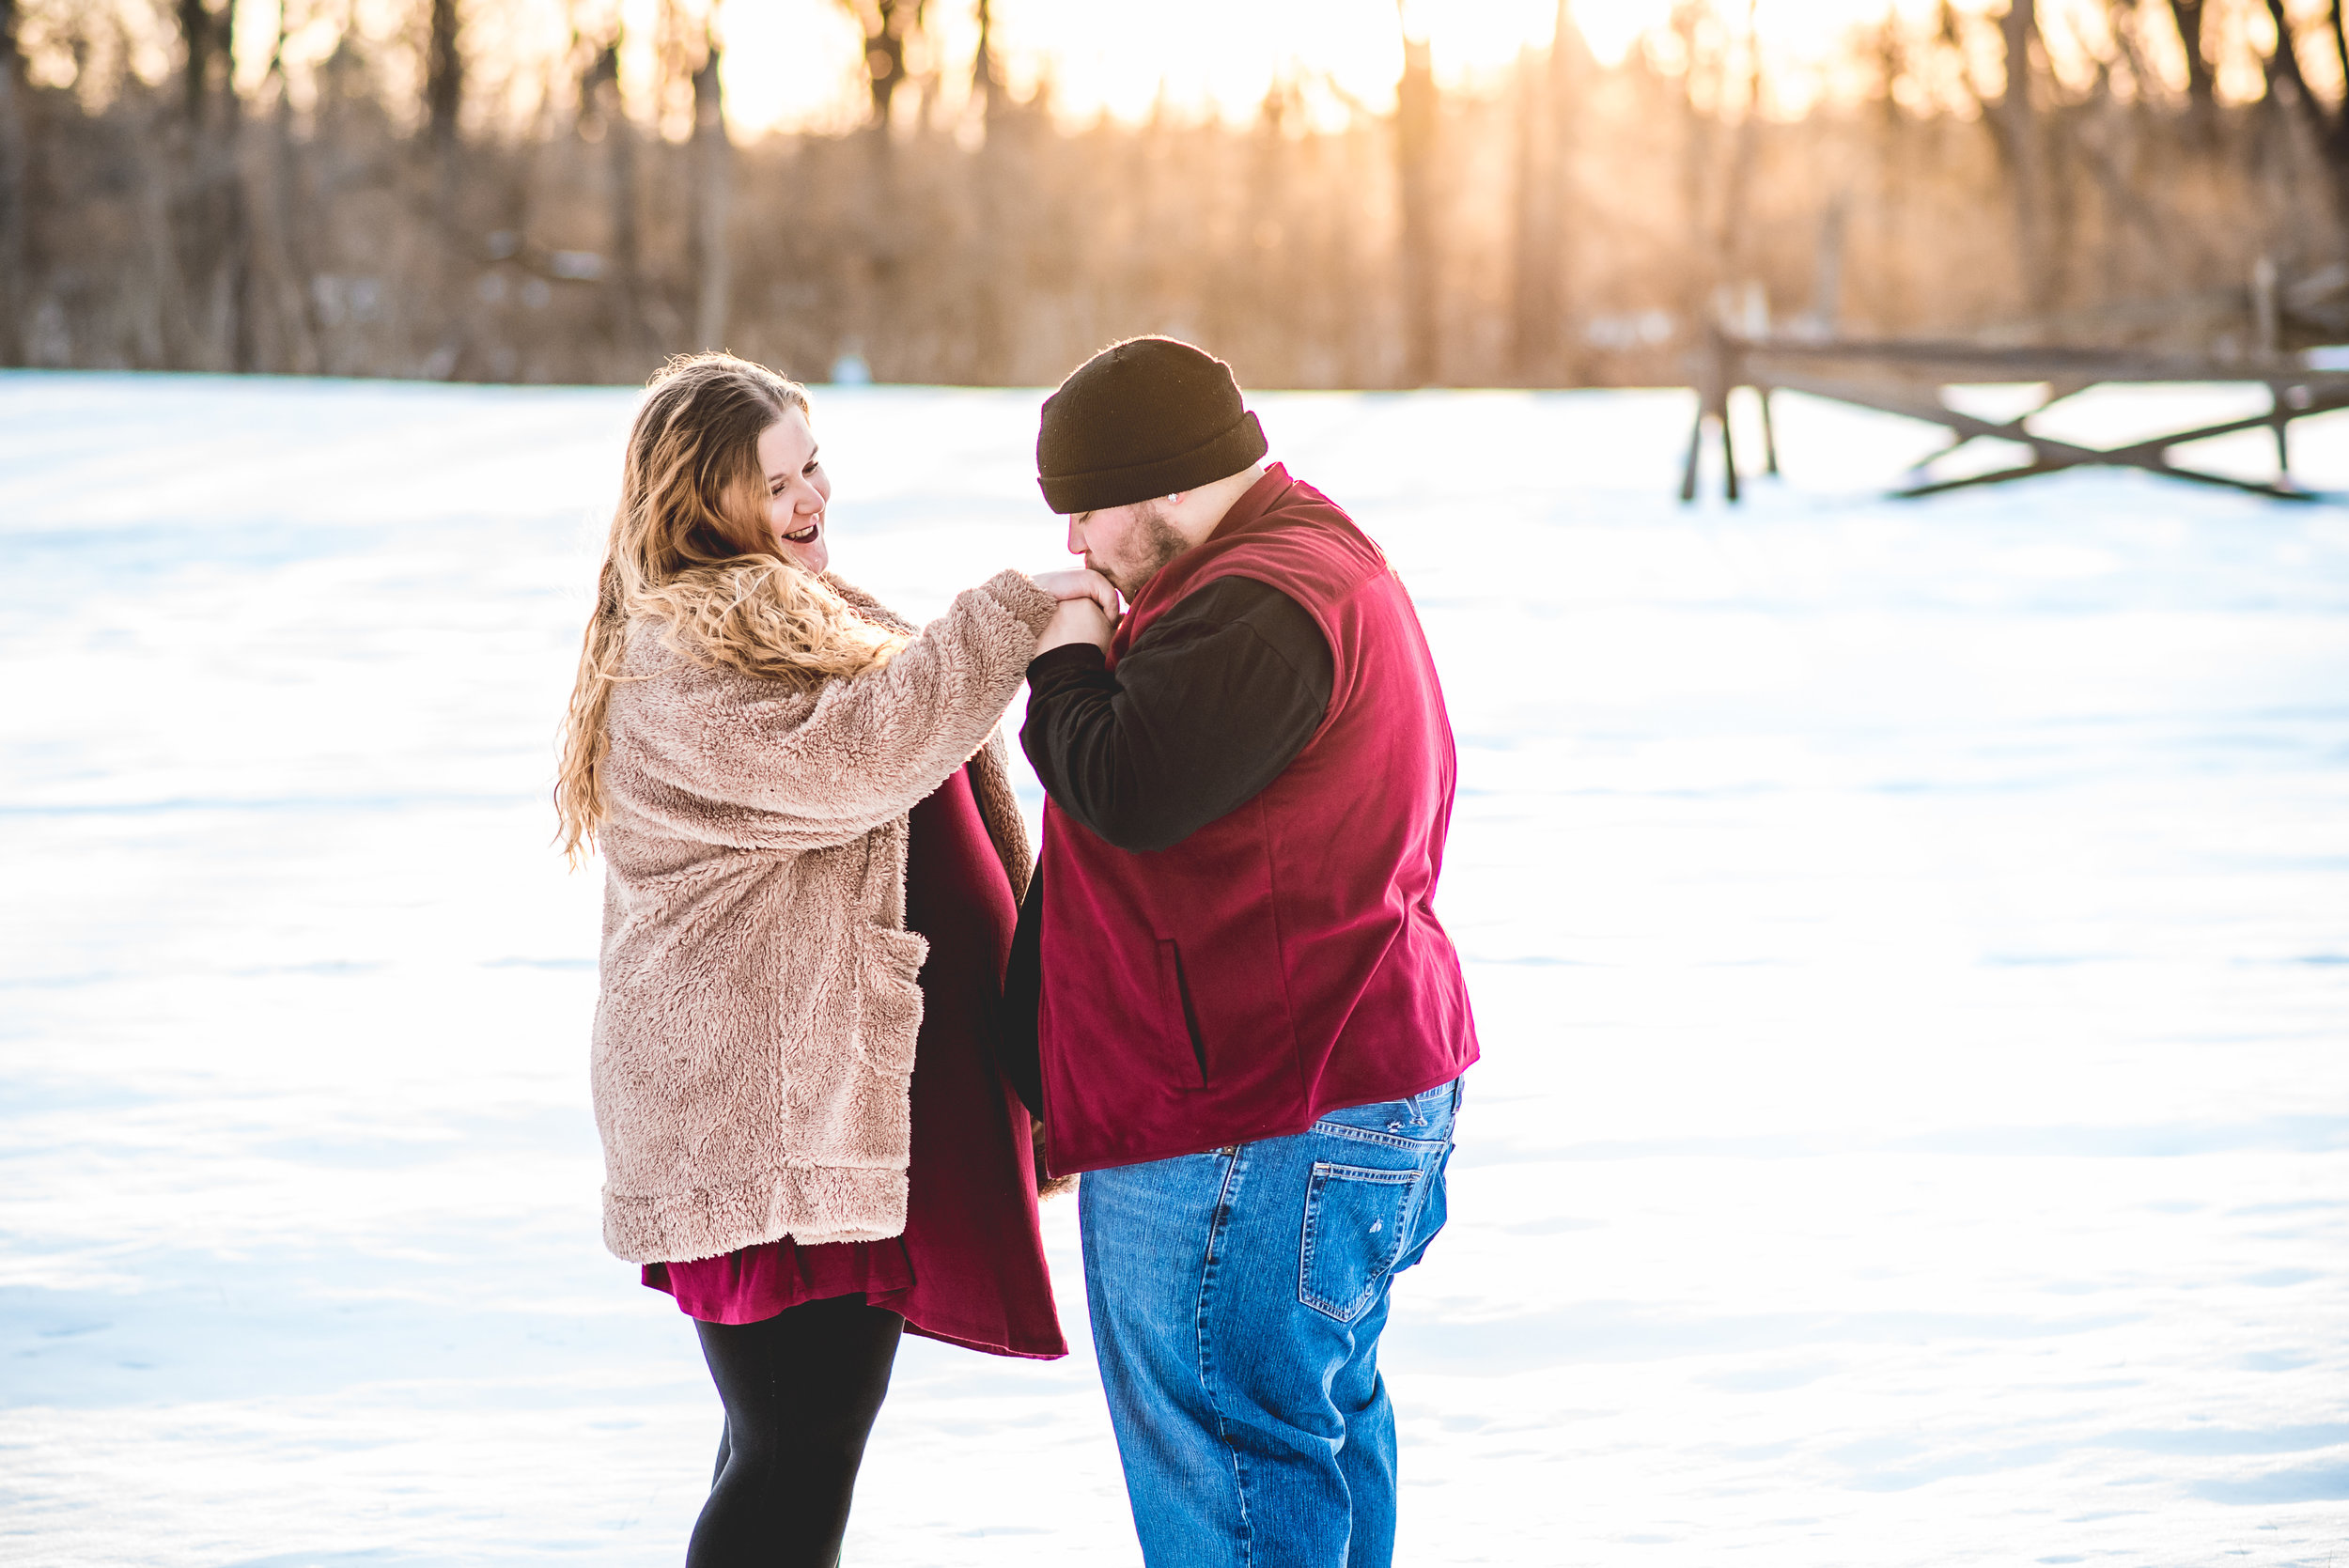 sunrise-engagement-in-the-snow-85.jpg